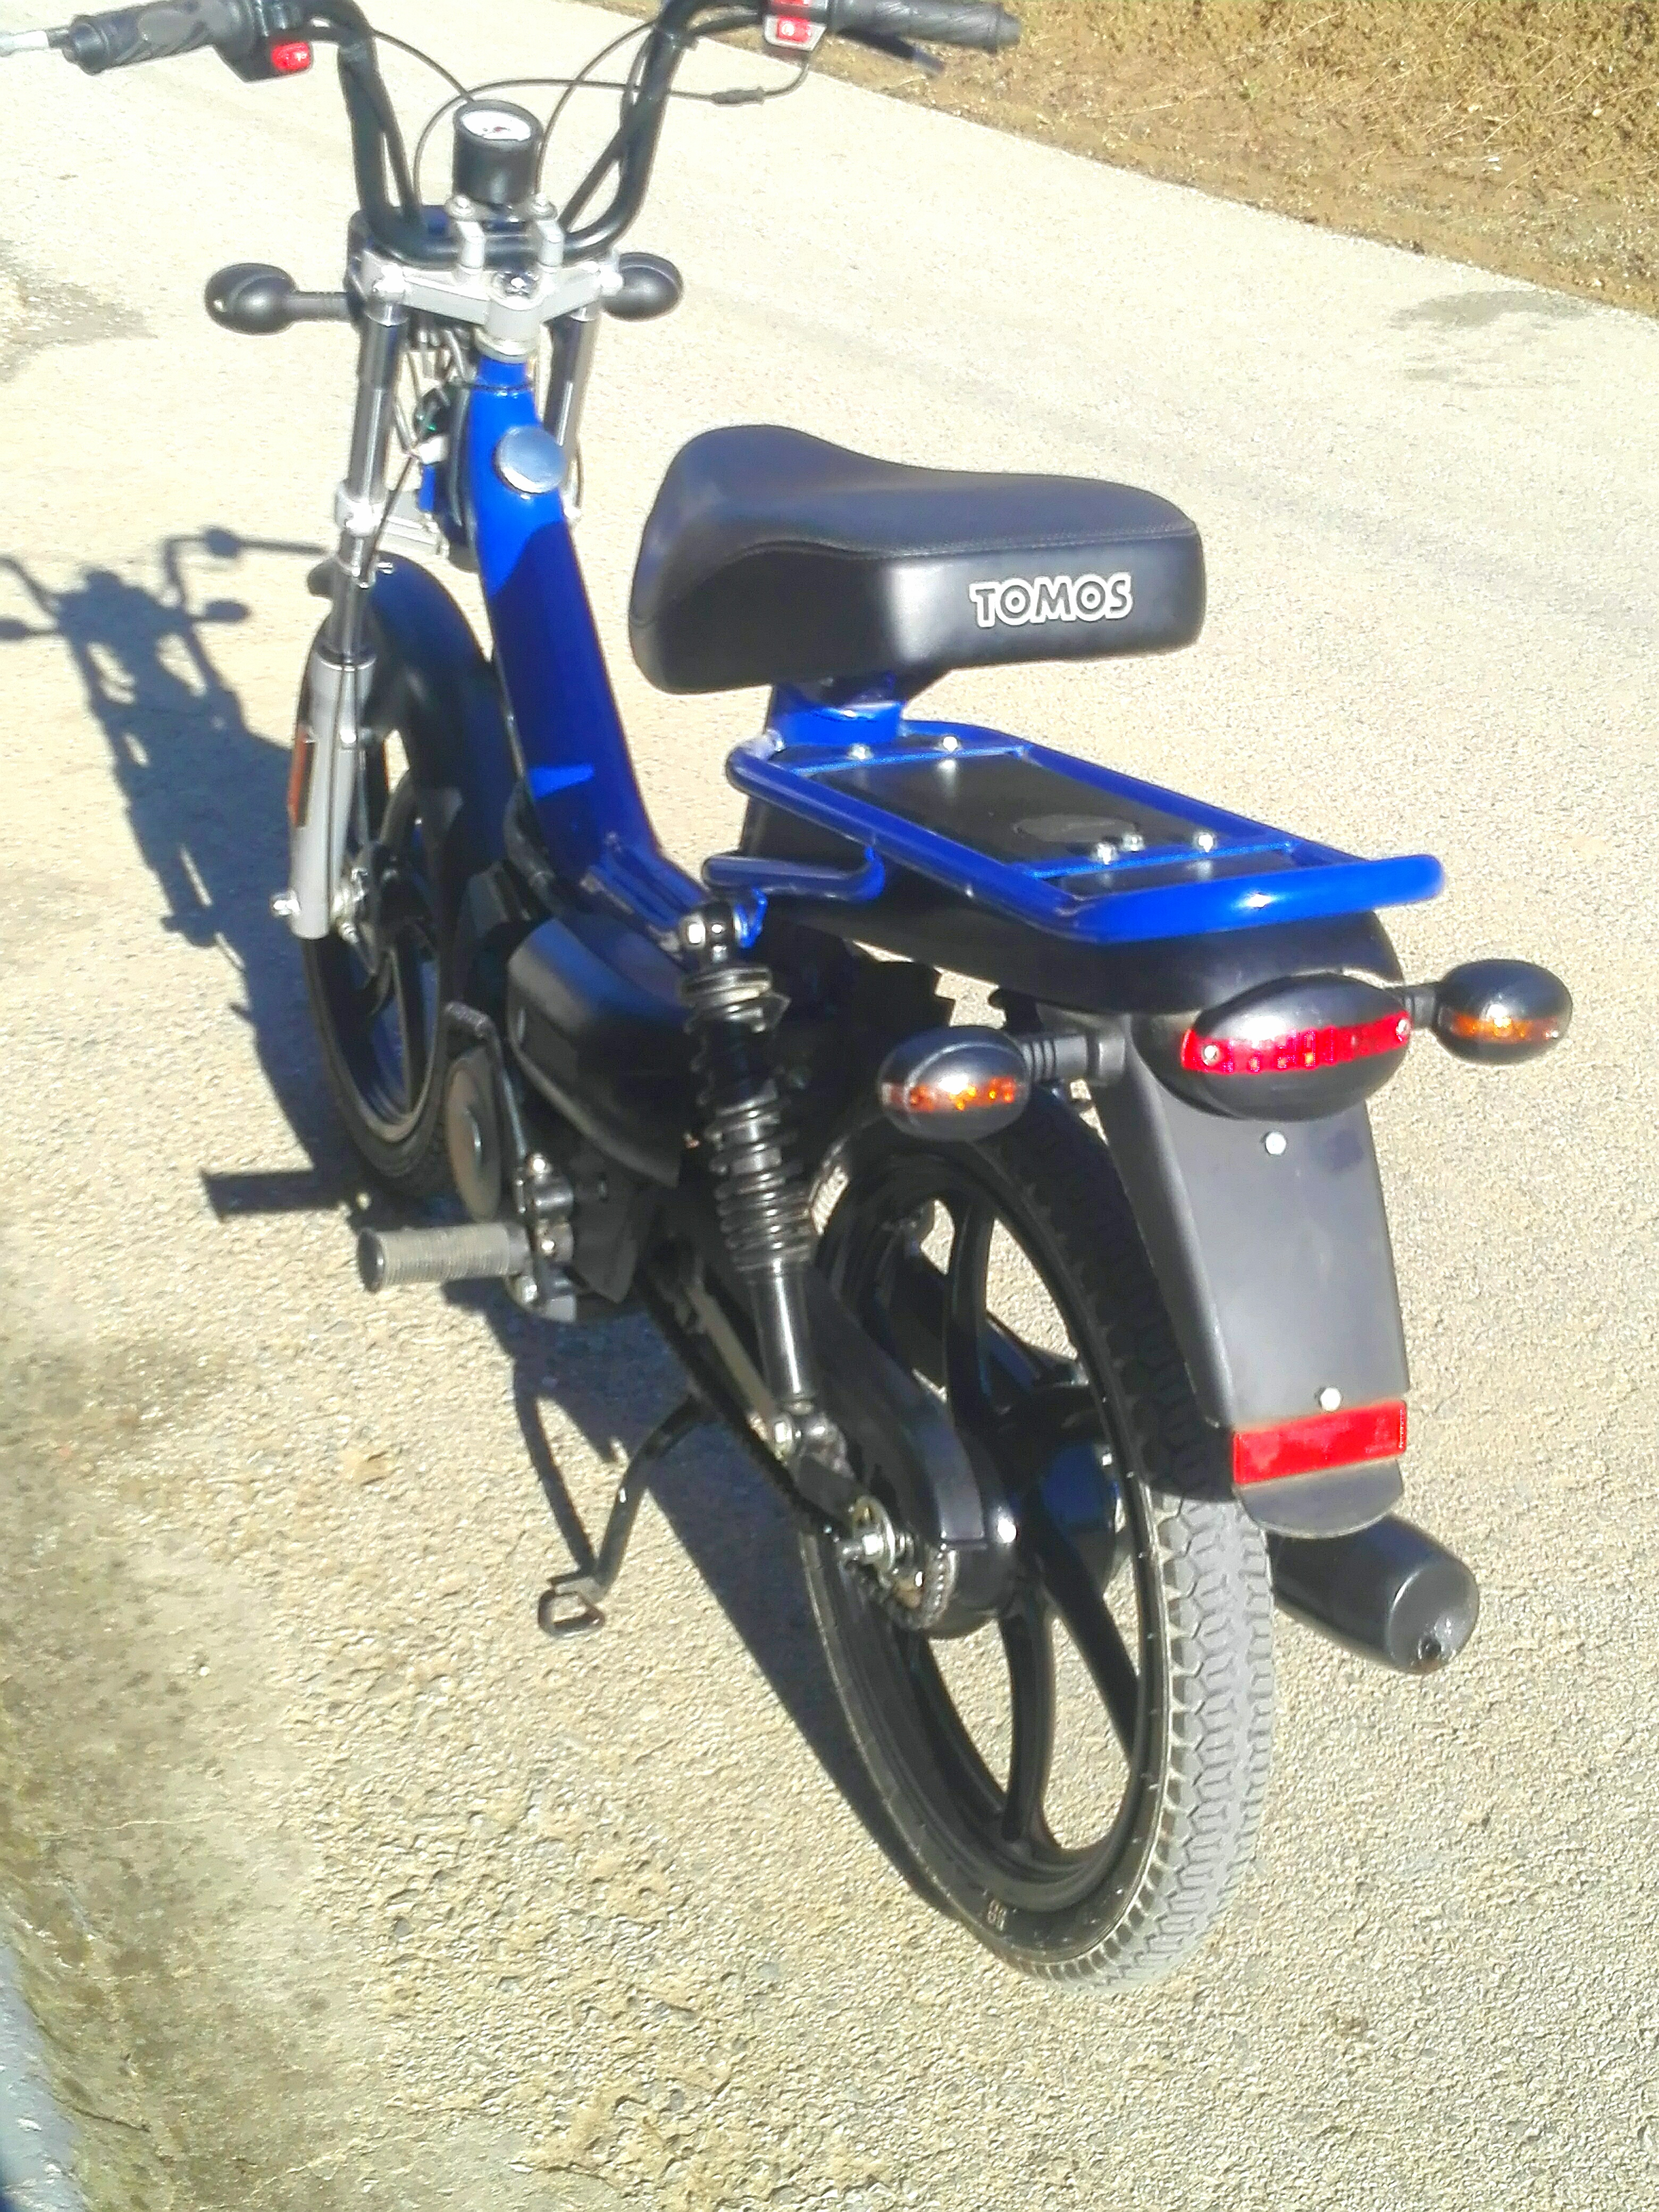 Tomos flexer tuning — Moped Army